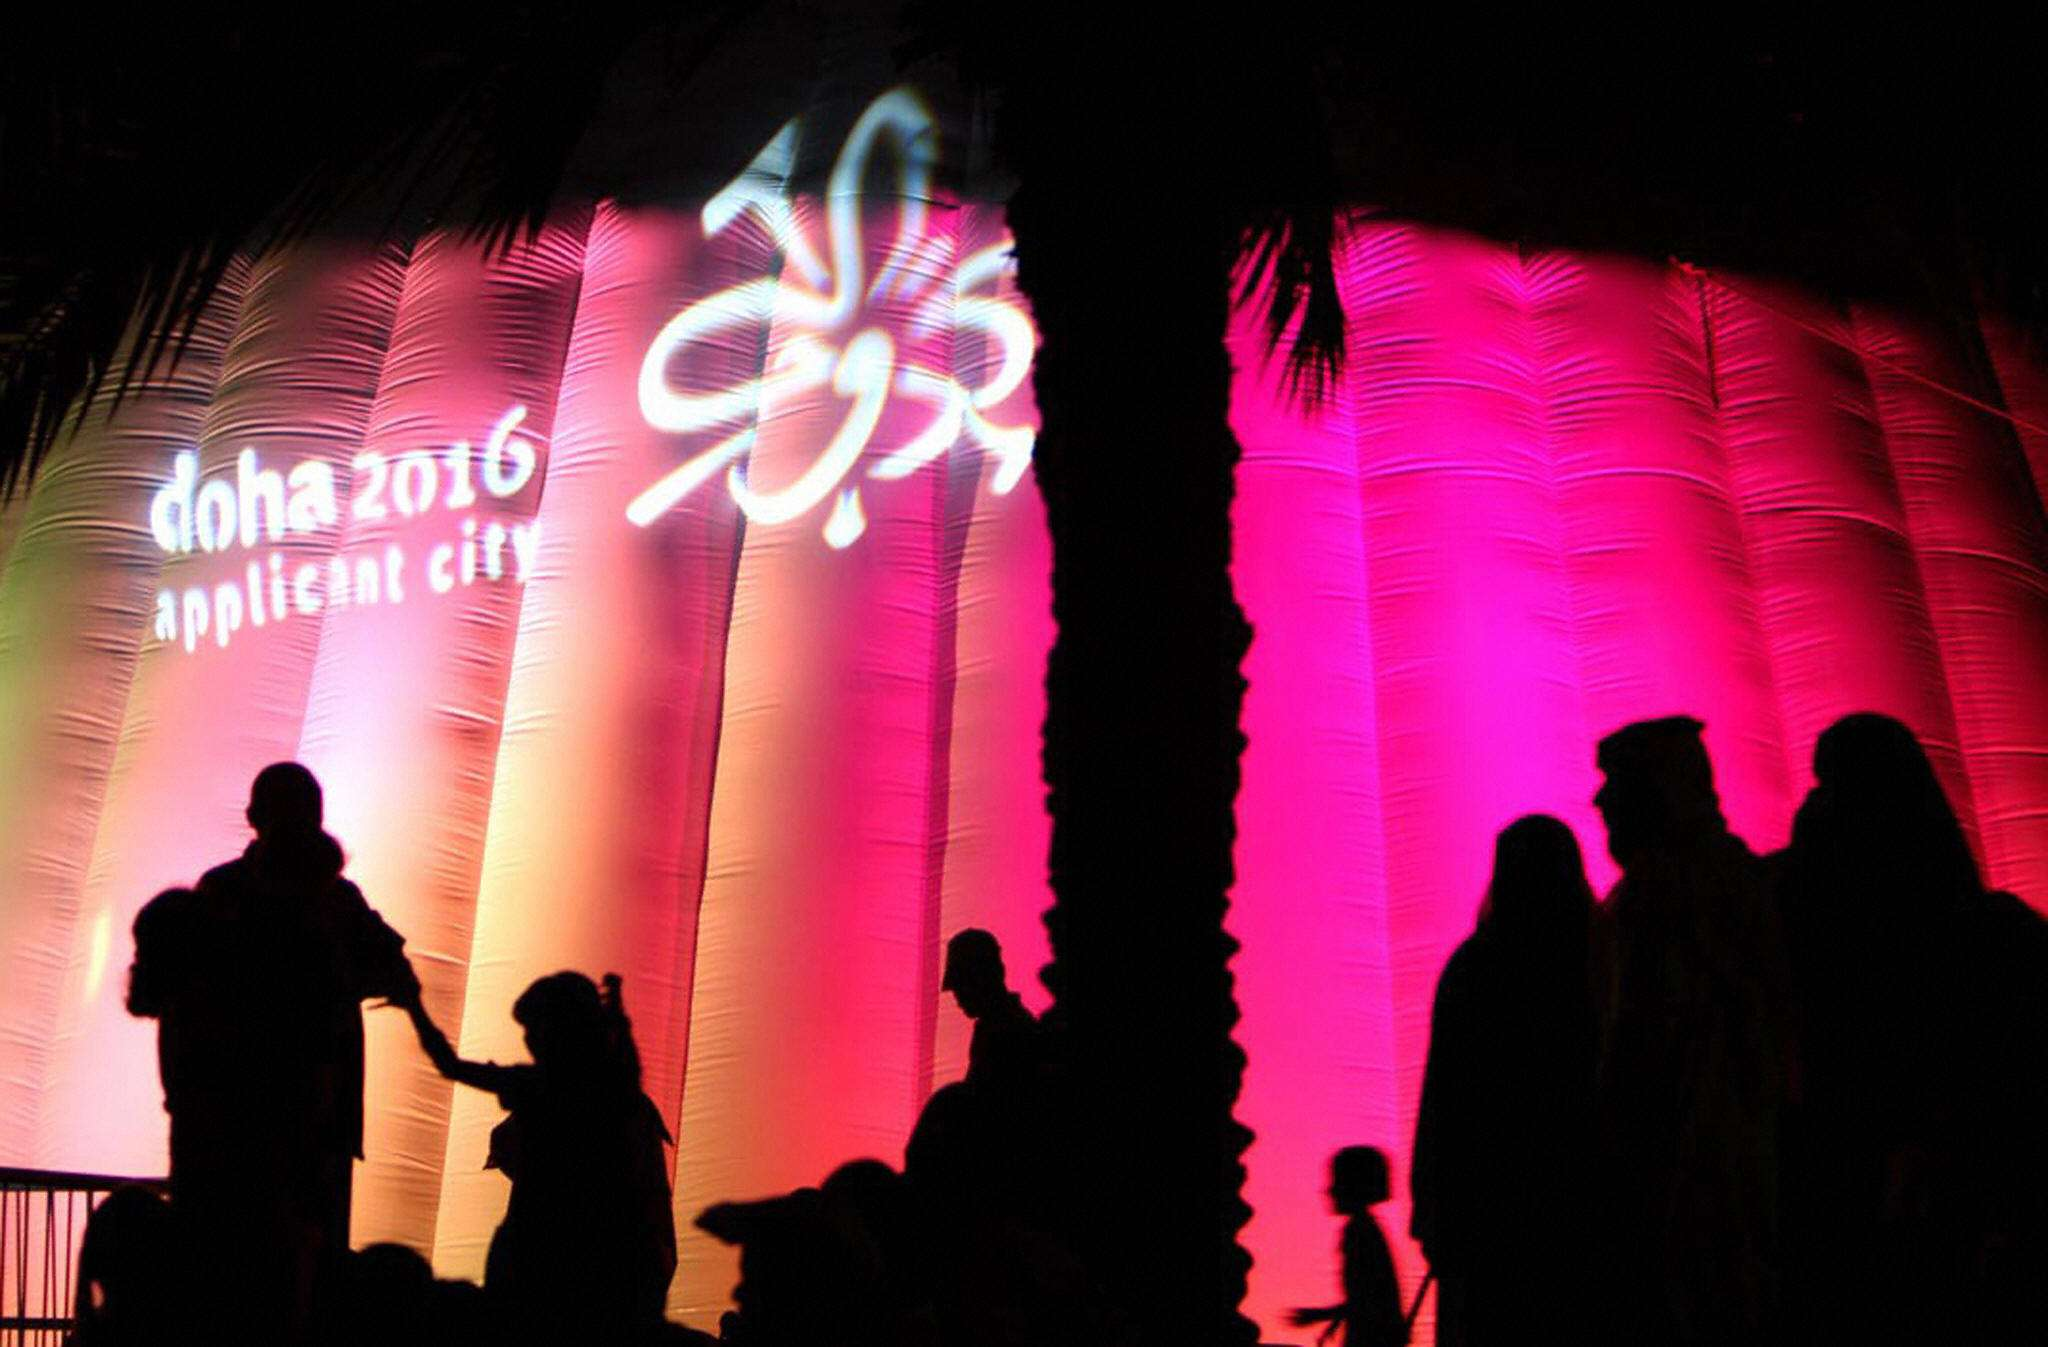 A general view shows people attending a lavish celebratory event to launch Qatar's bid to have host the 2016 Summer Olympics. Foto: Getty Images